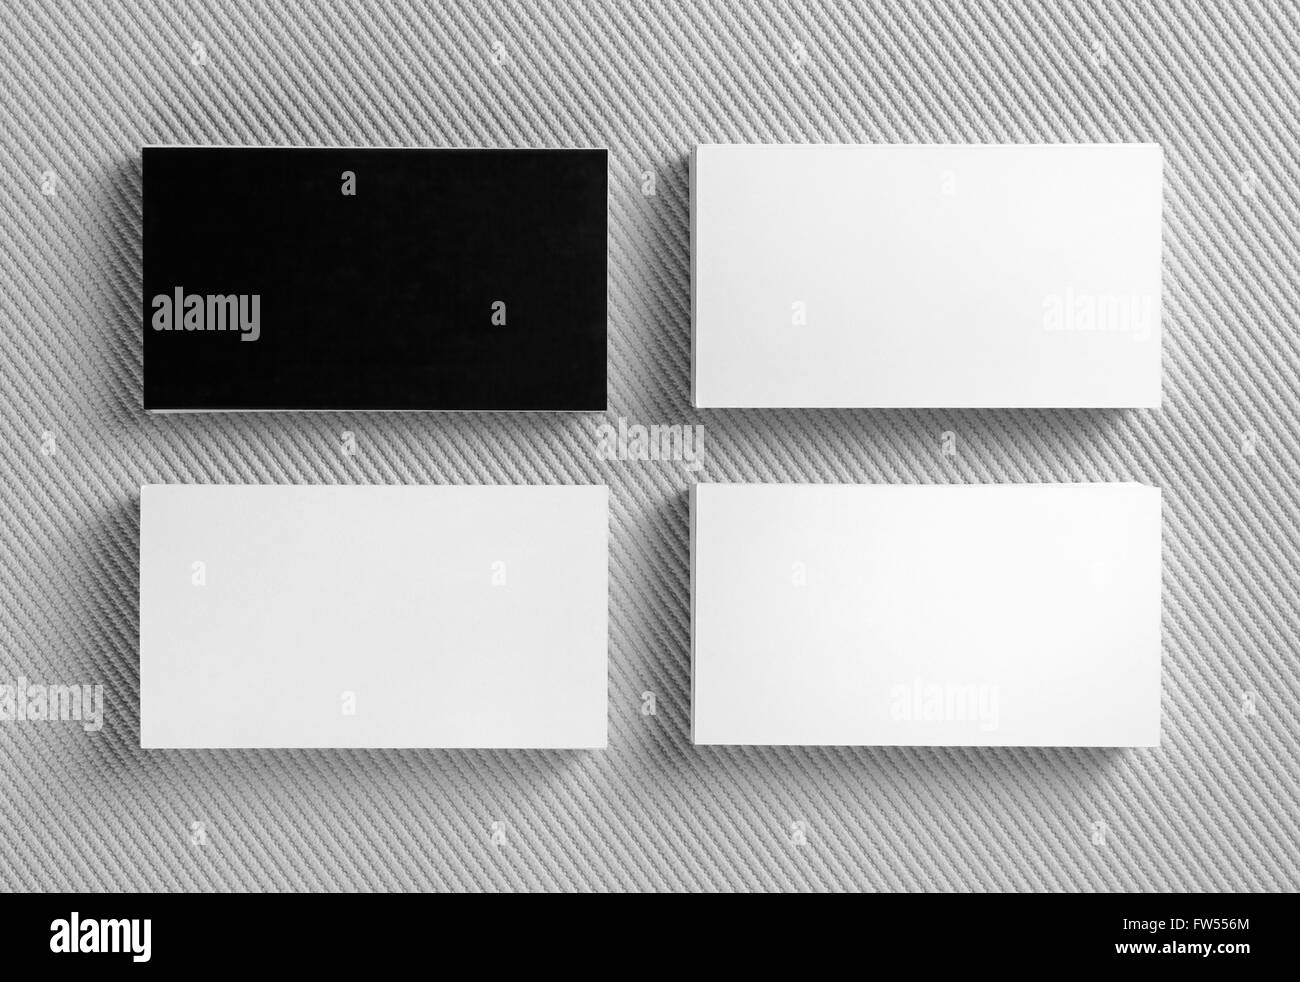 Blank Black And White Business Cards On Gray Background Mockup For Branding Identity Template Graphic Designers Portfolios